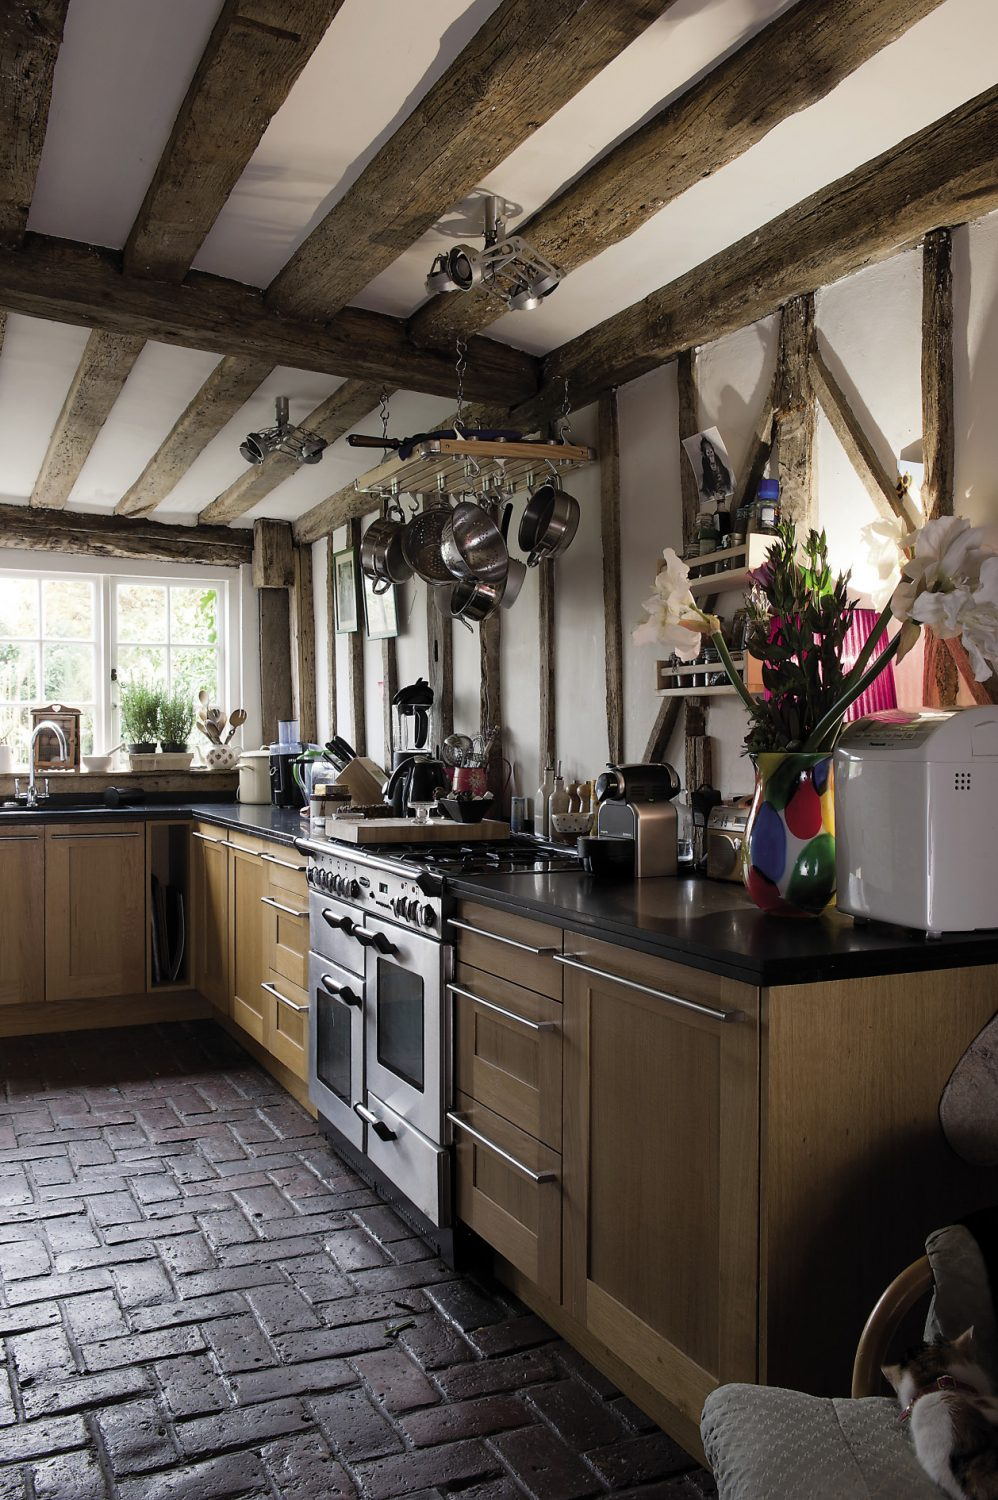 In the kitchen, carpenter Mick has worked his magic with bespoke oak shelving and cabinets that look for all the world like mahogany but are, in fact, artfully painted MDF